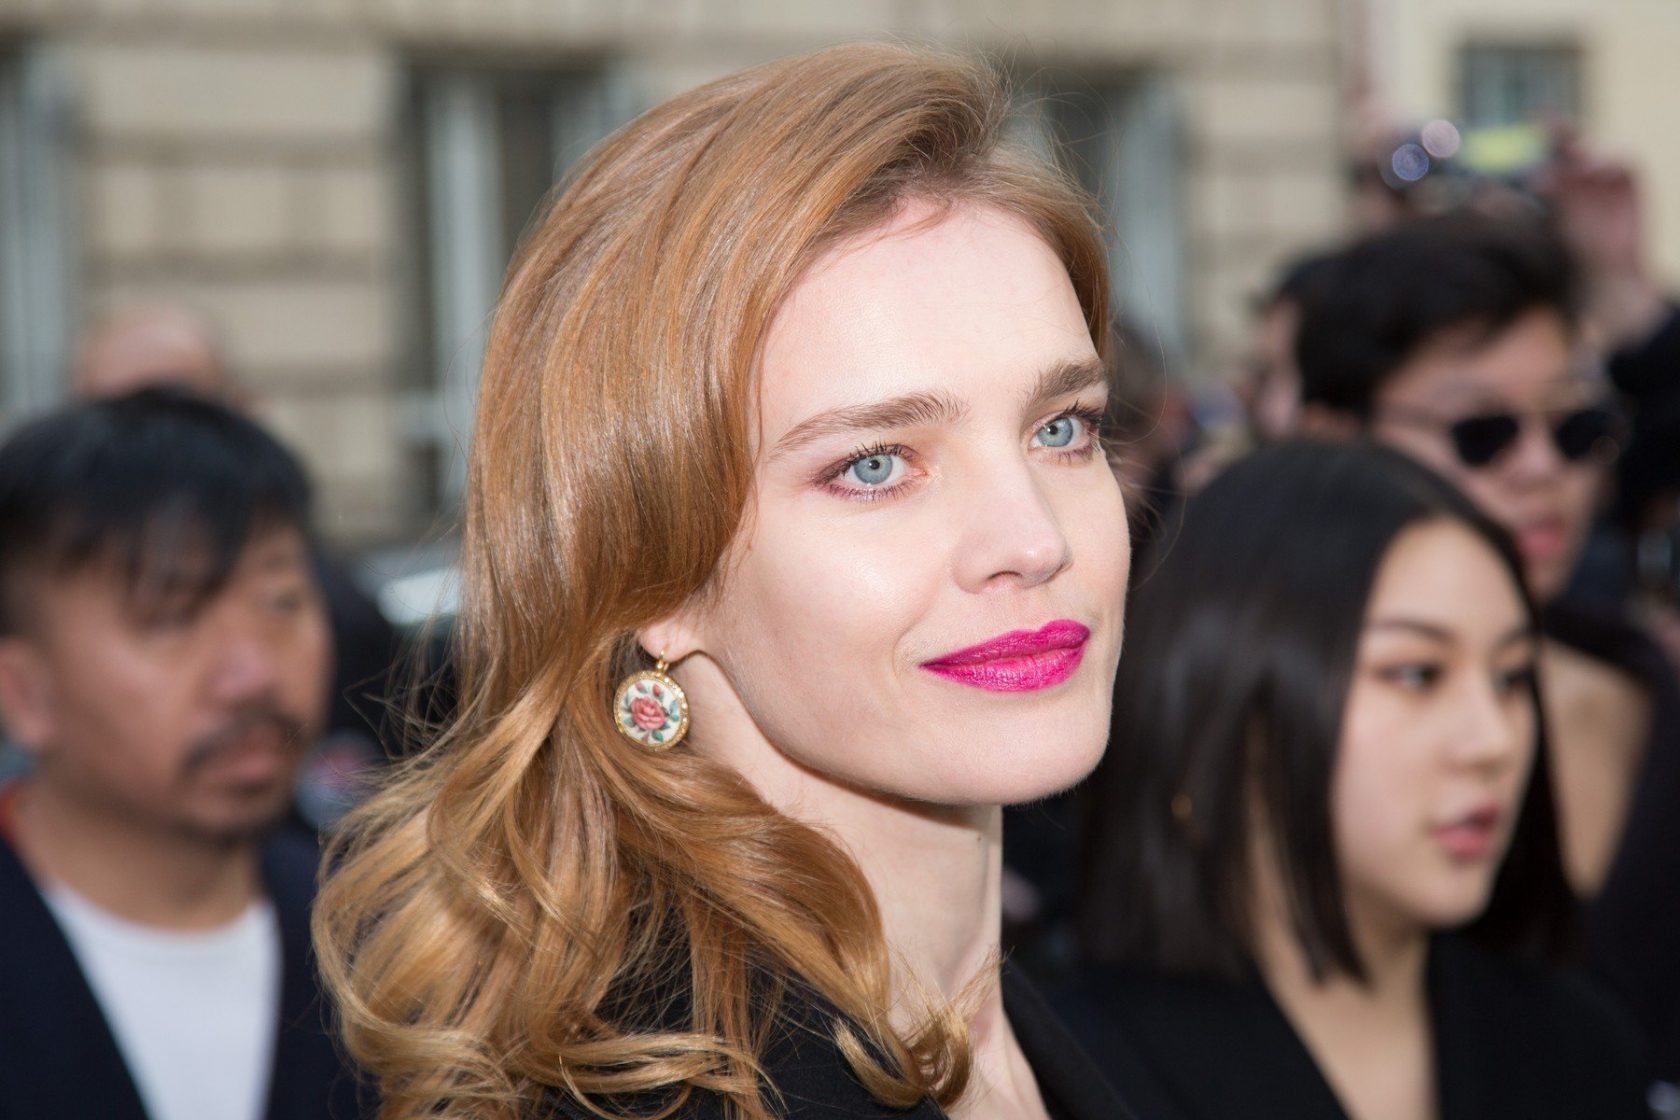 Natalia Vodianova arriving to the Christian Dior Haute Couture Spring Summer 2018 show as part of Paris Fashion Week on January 22, 2018 in Paris, France., Image: 361045178, License: Rights-managed, Restrictions: , Model Release: no, Credit line: Profimedia, KCS Presse